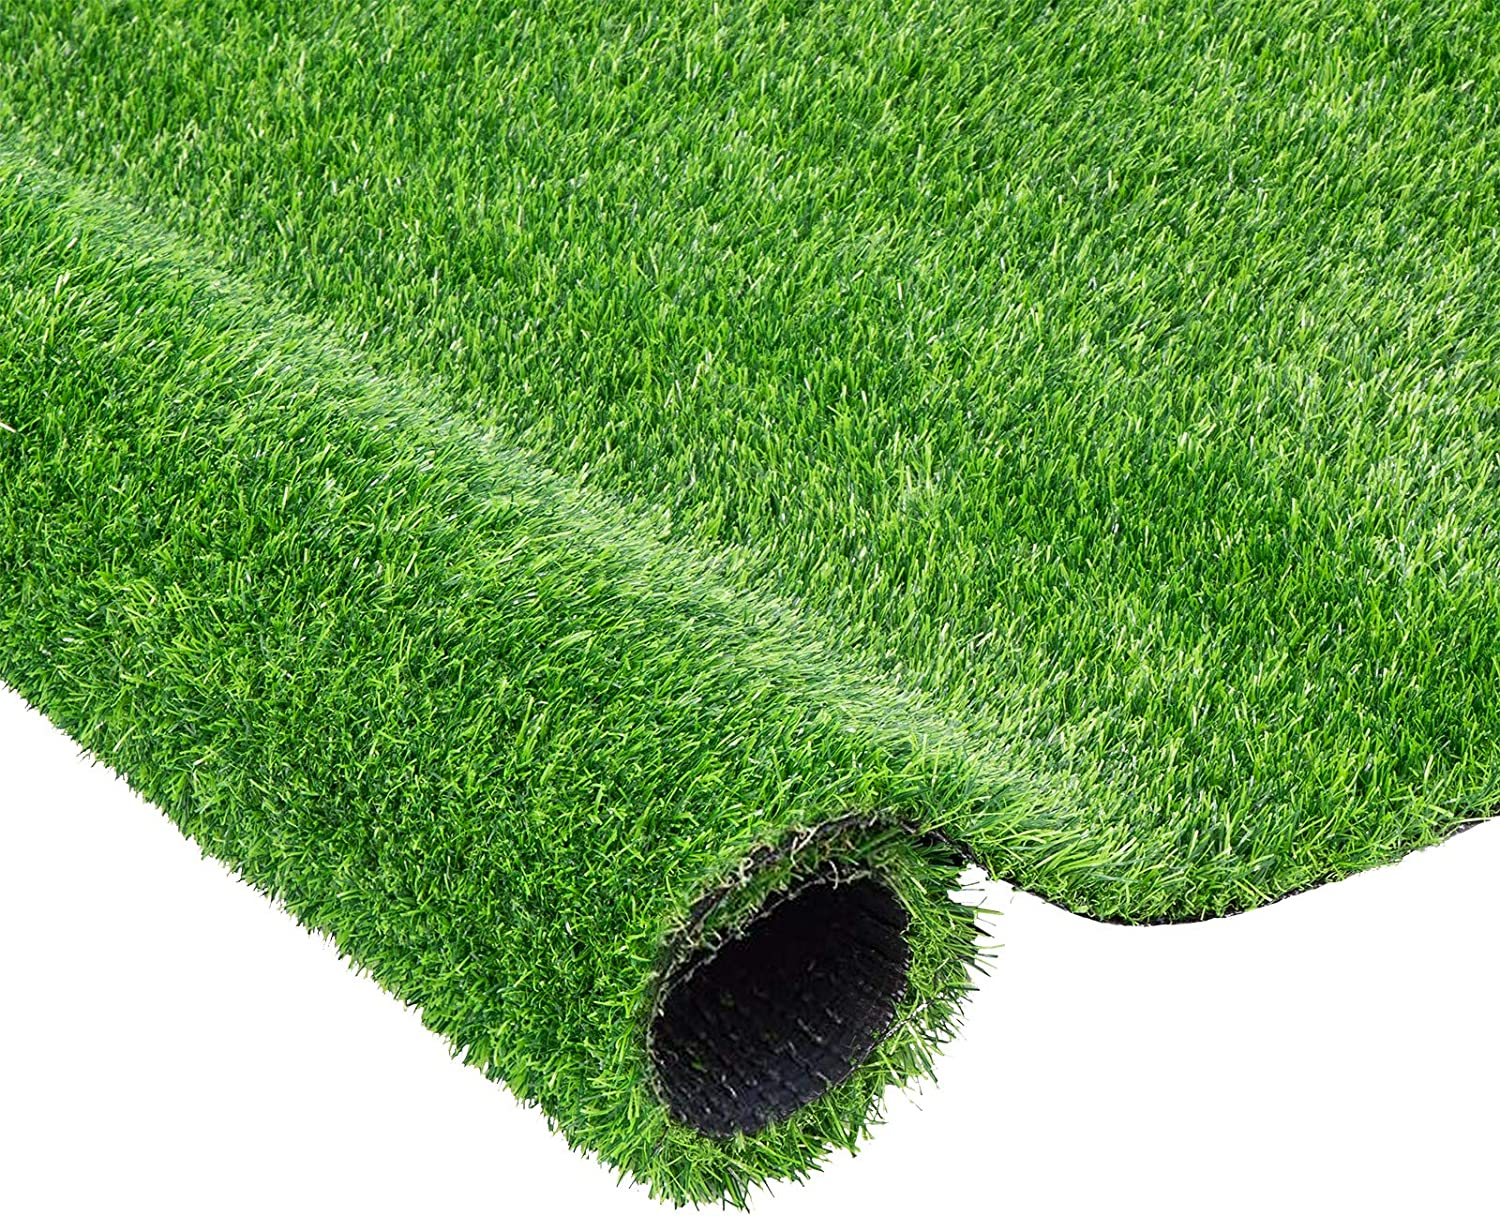 VIVOSUN 4 x 7 ft Artificial Grass Rug with Drain Holes,Soft Realistic Grass Turf for Dogs and Patio Garden Décor